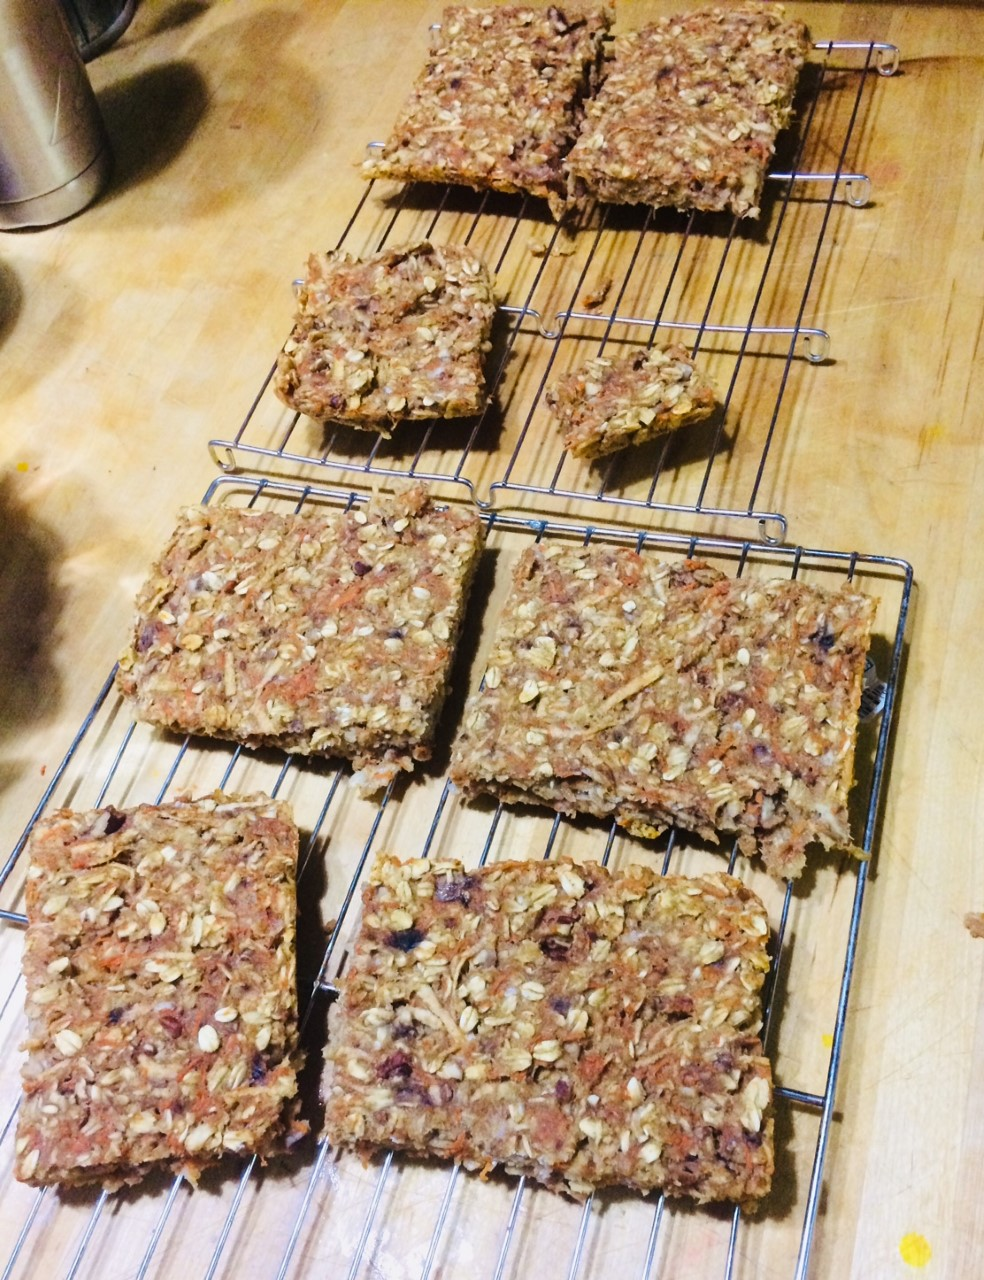 Banana Oat Energy Bars stompykitty